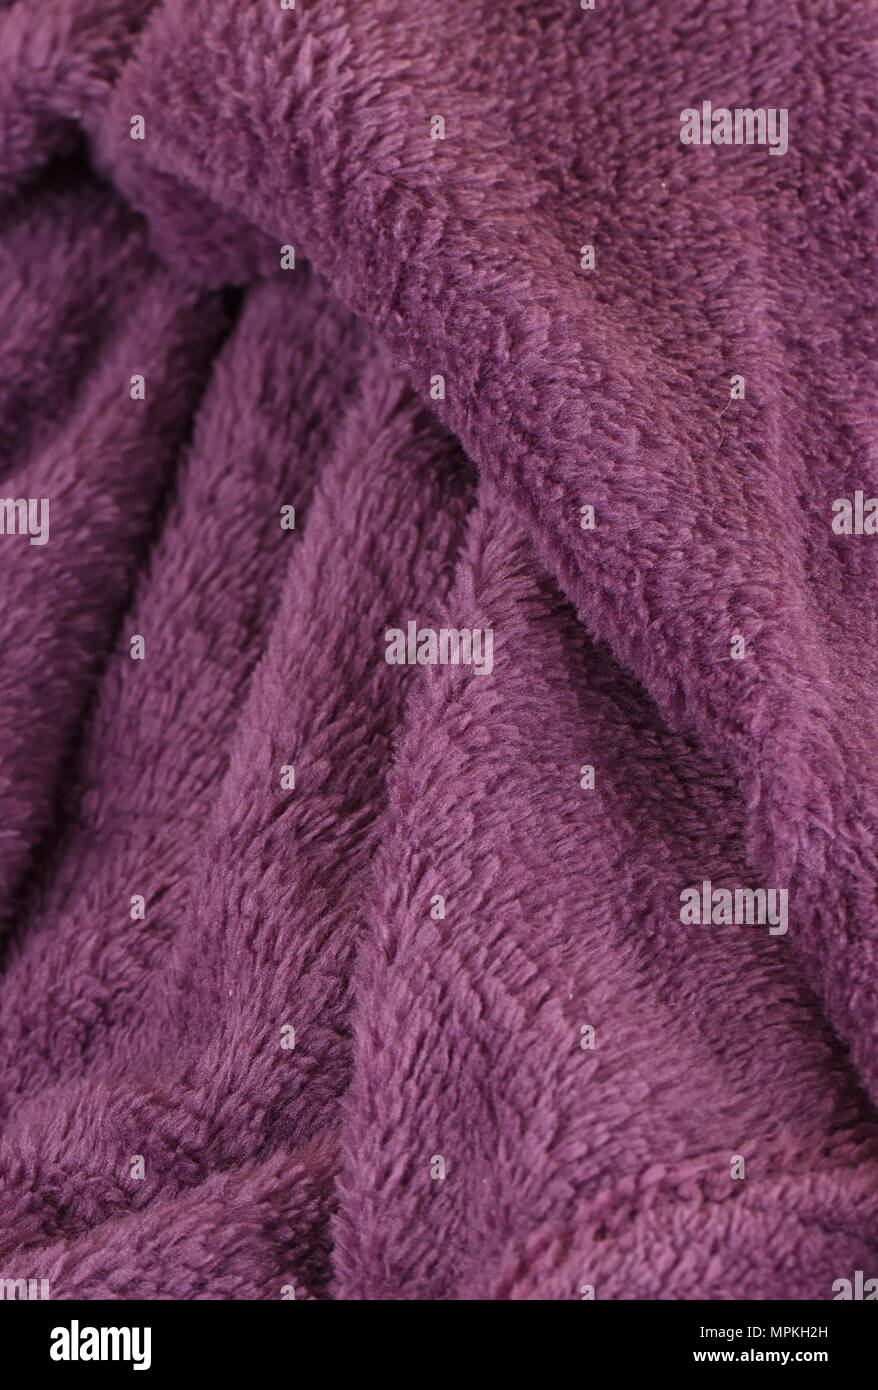 Dark Purple Bath Fluffy Towel Or Blanket Stock Photo Alamy